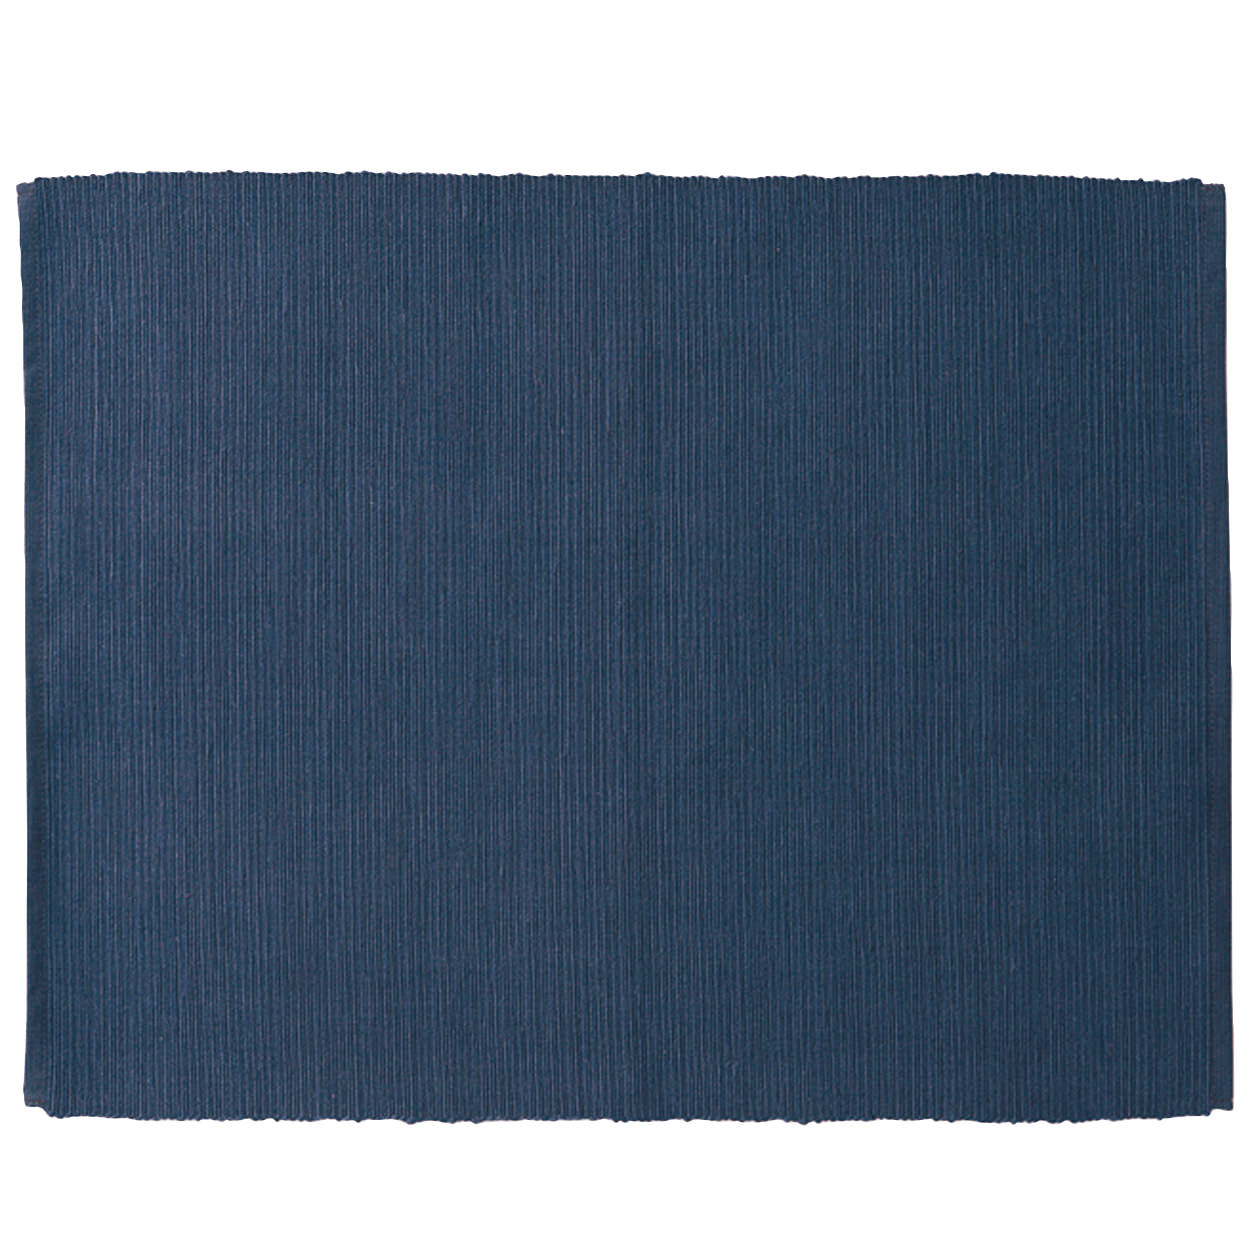 INDIAN COTTON HANDWOVEN PLACEMAT / BLUE